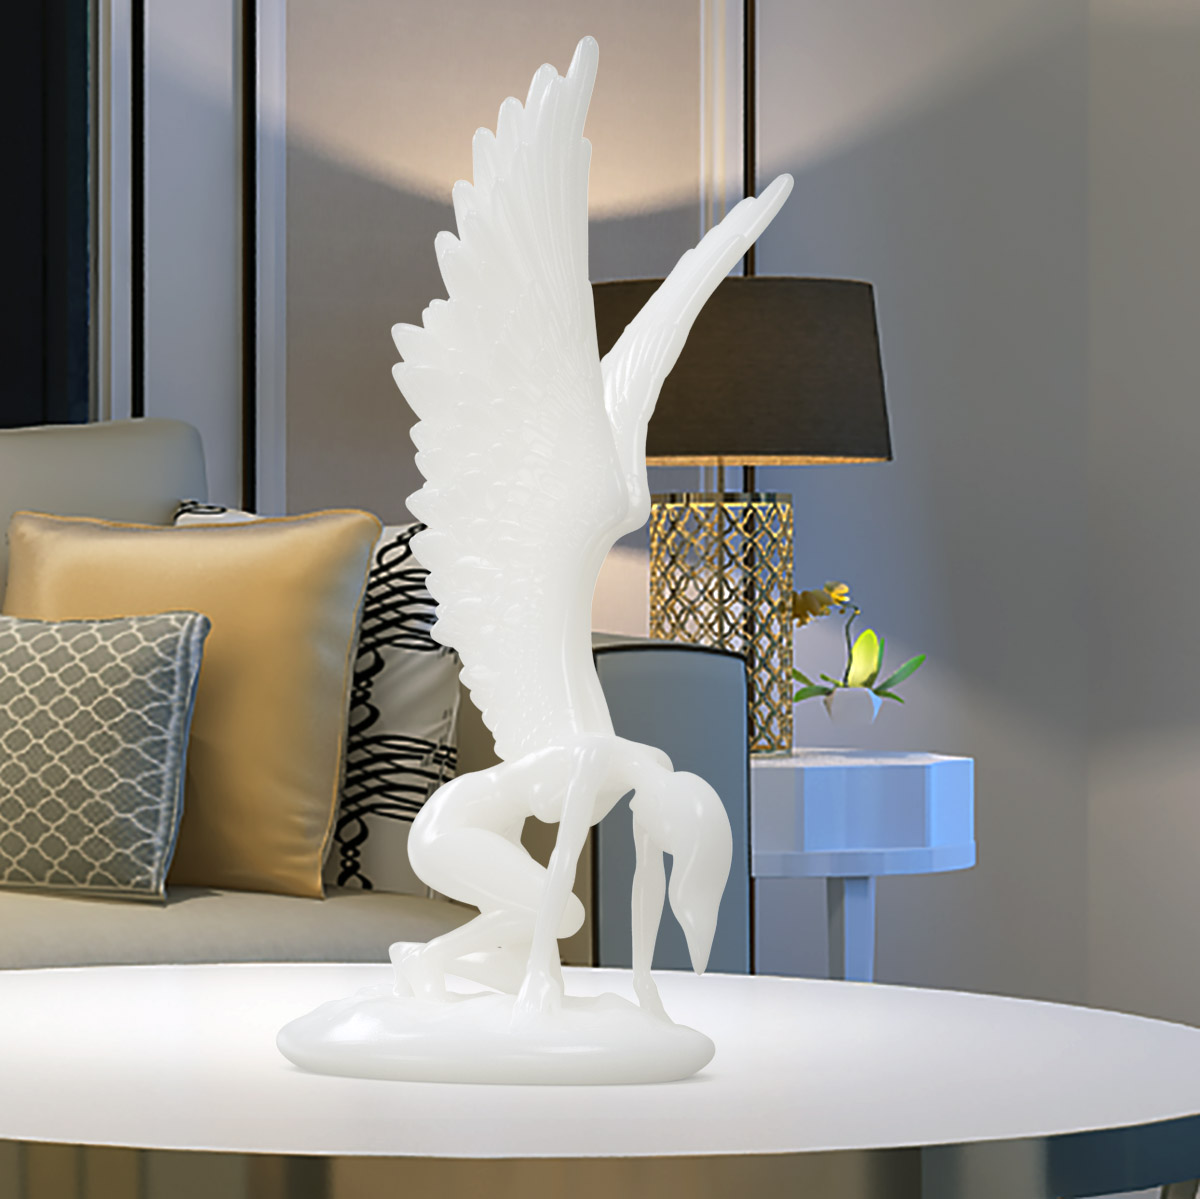 Us 84 32 45 Off Angel With Wings Figurine Printed Sculpture For Living Room Bedroom Home Decoration West Myth Art Decor Abstract Statue In